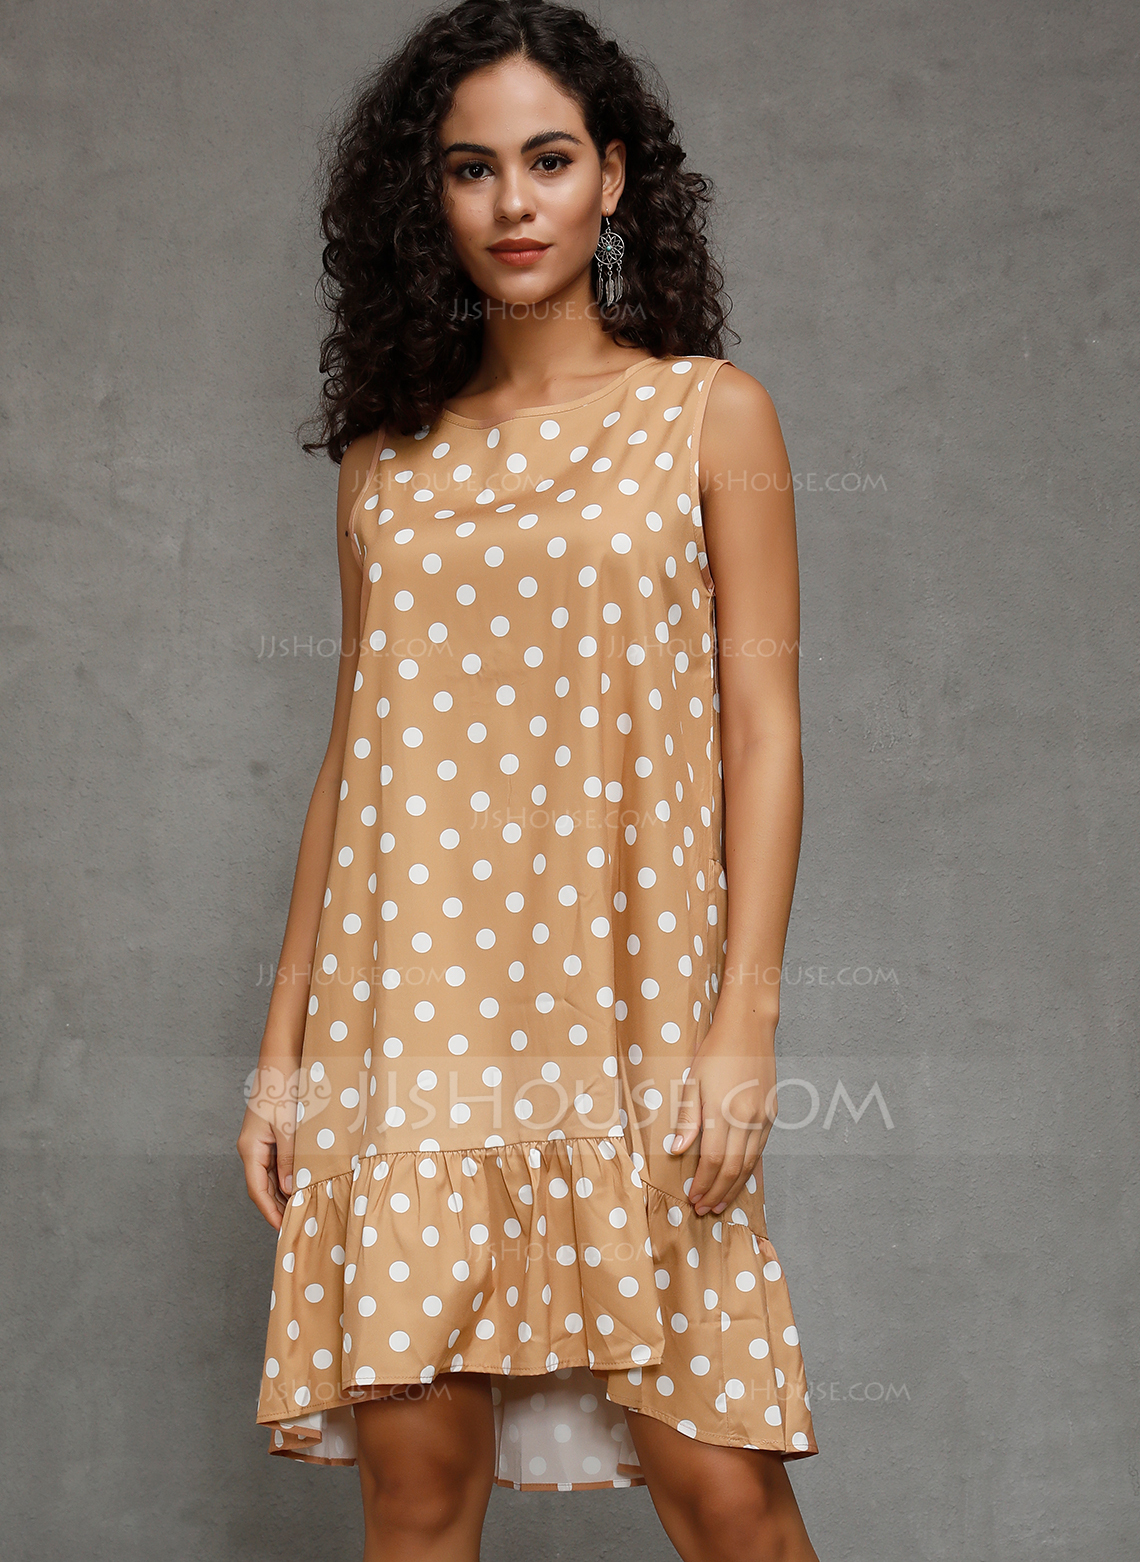 Polyester With Ruffles/PolkaDot Knee Length Dress